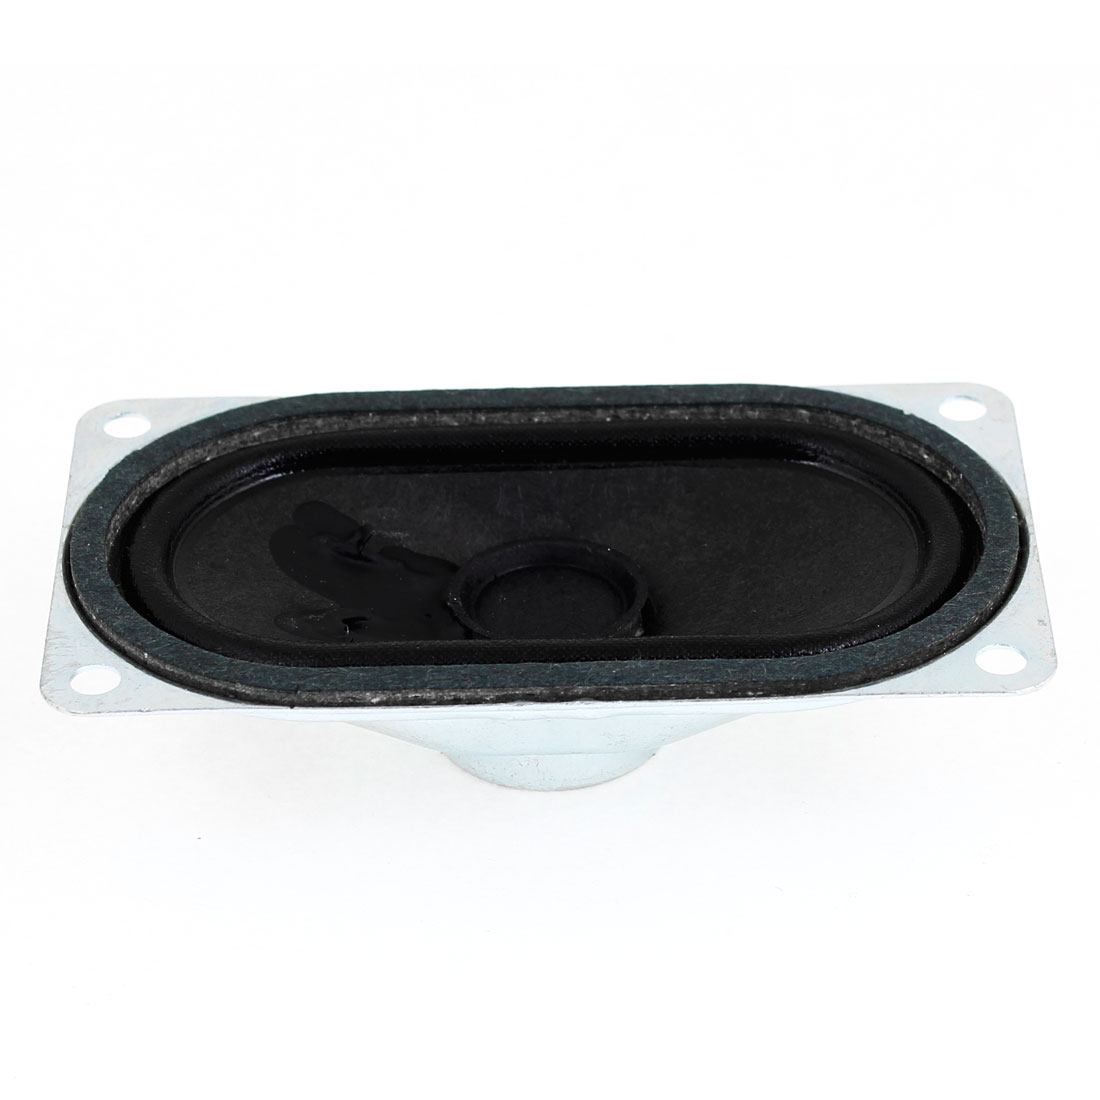 71mm x 41mm Rectangular External Magnet Speaker Tweeter 8 Ohm 5W